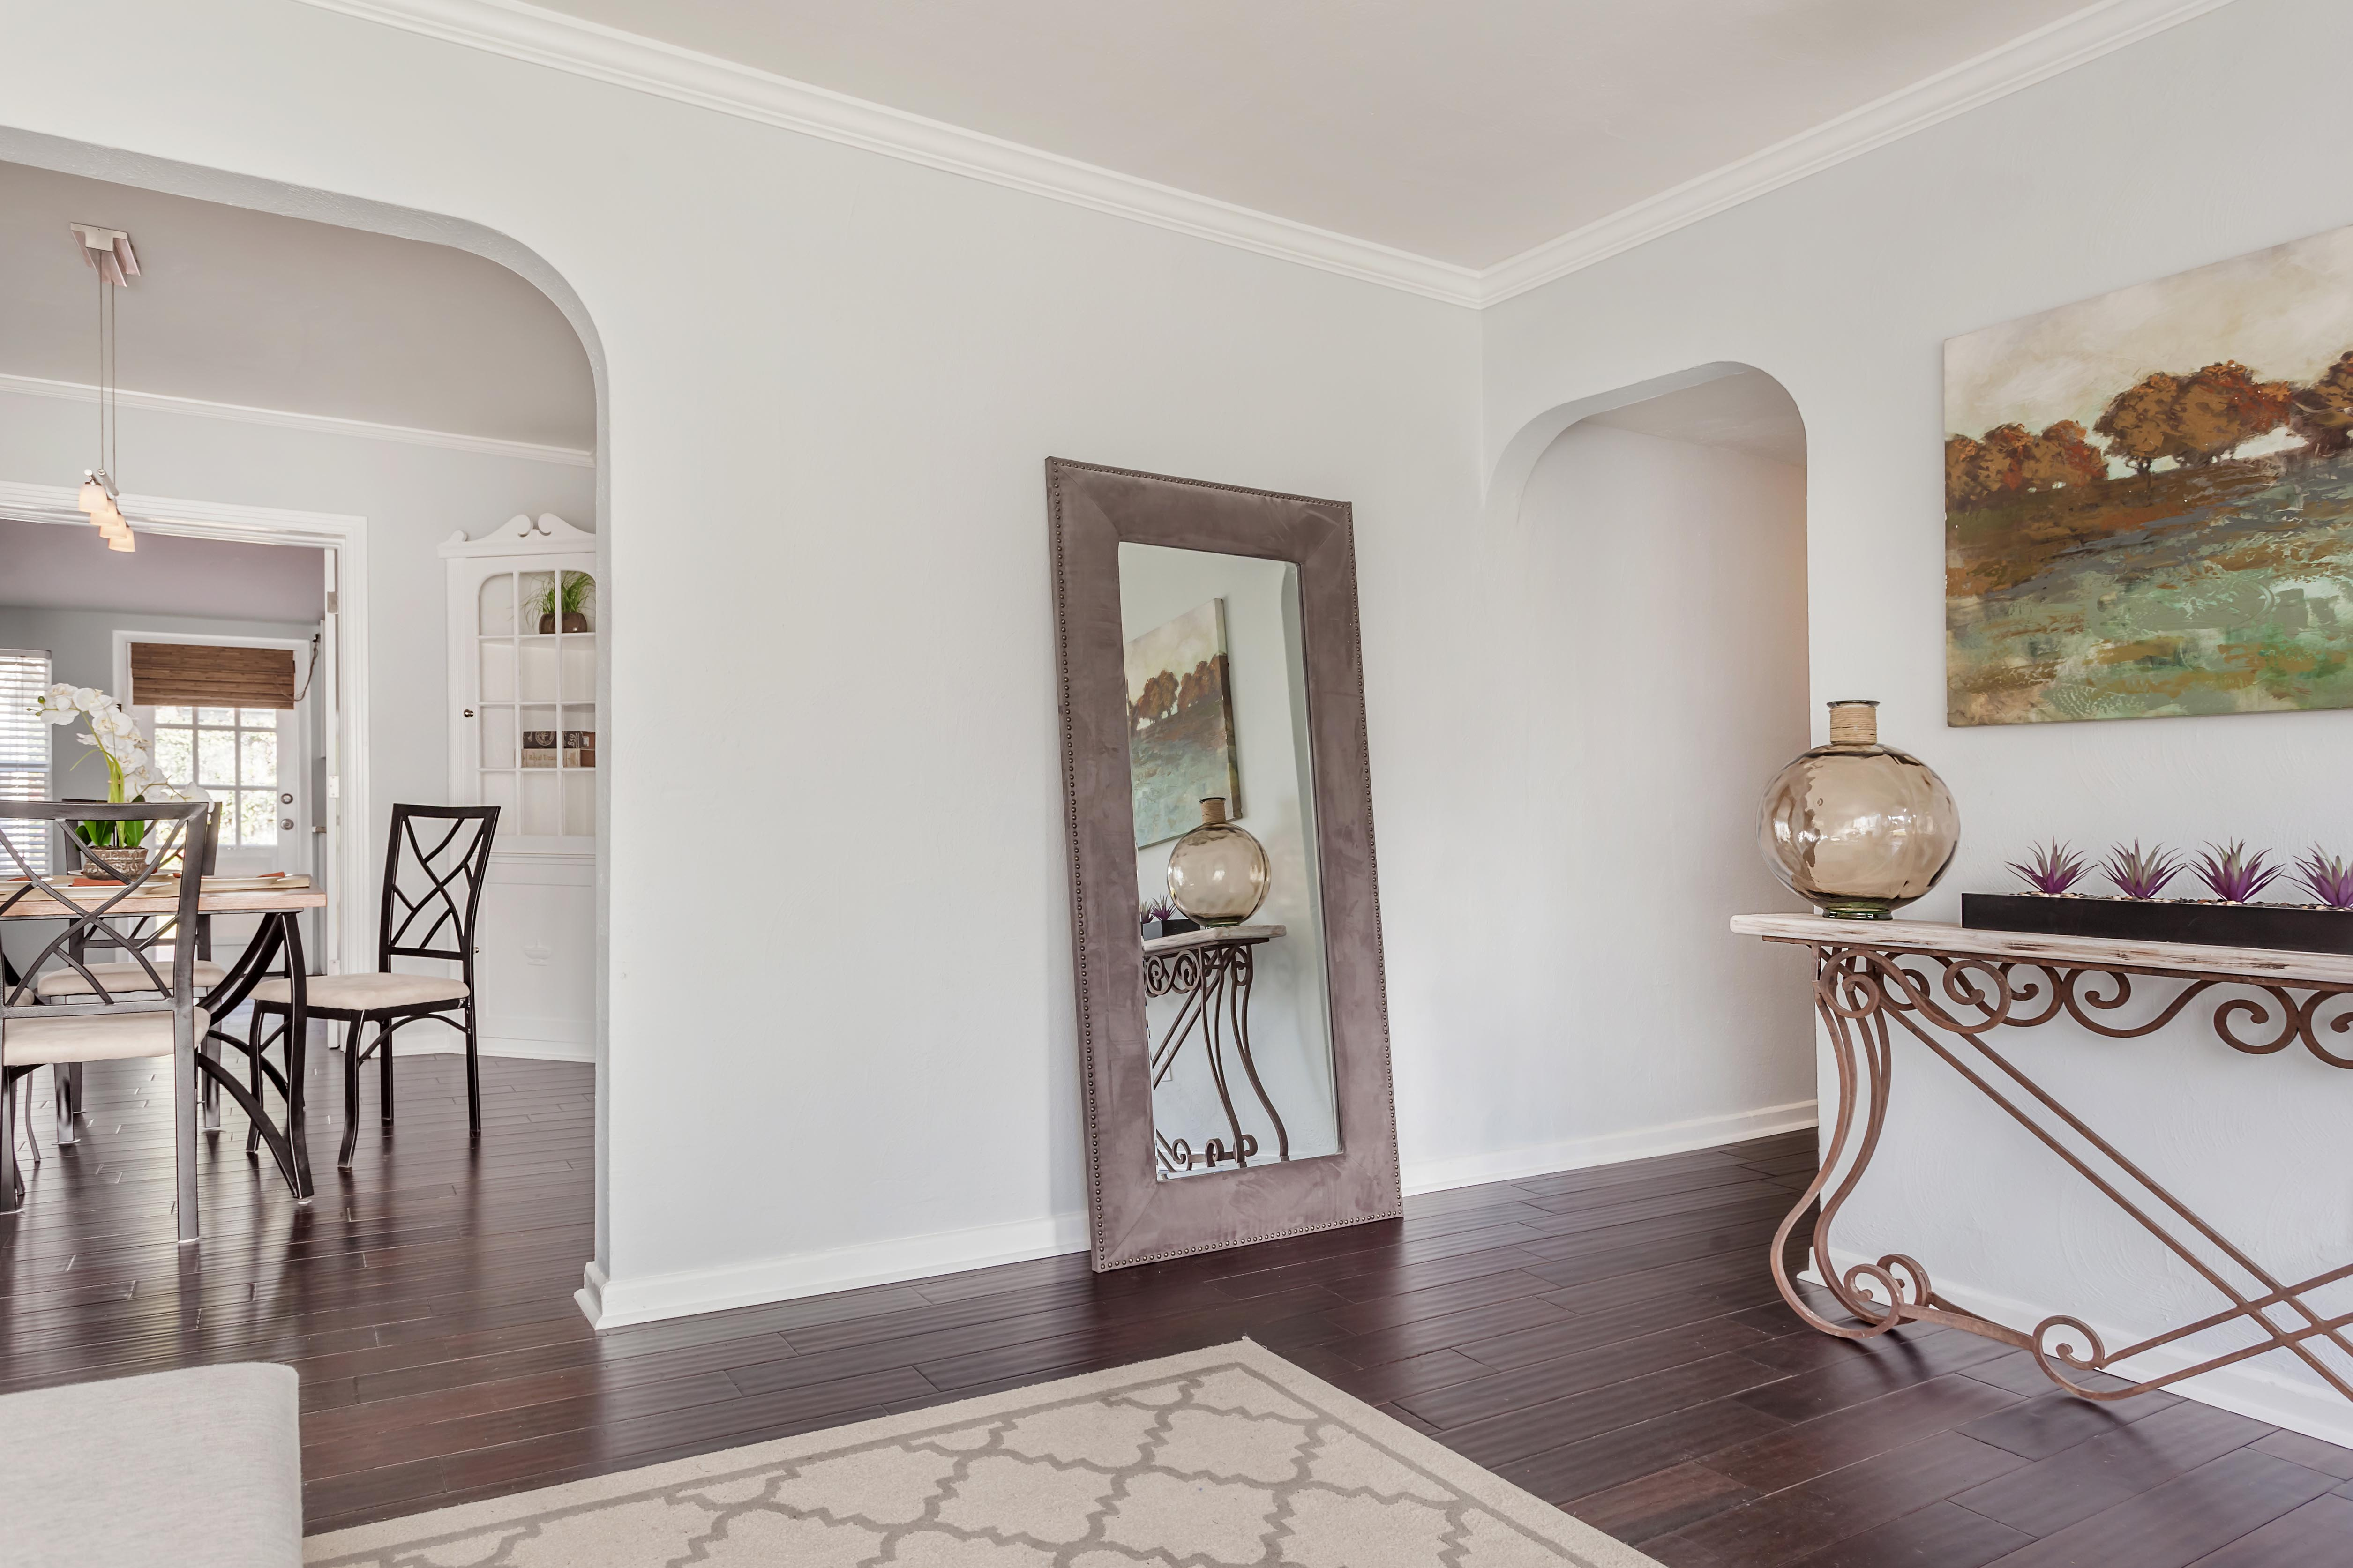 South Tampa Home Staged - Under Contract In Hours! - Cardinal Designs